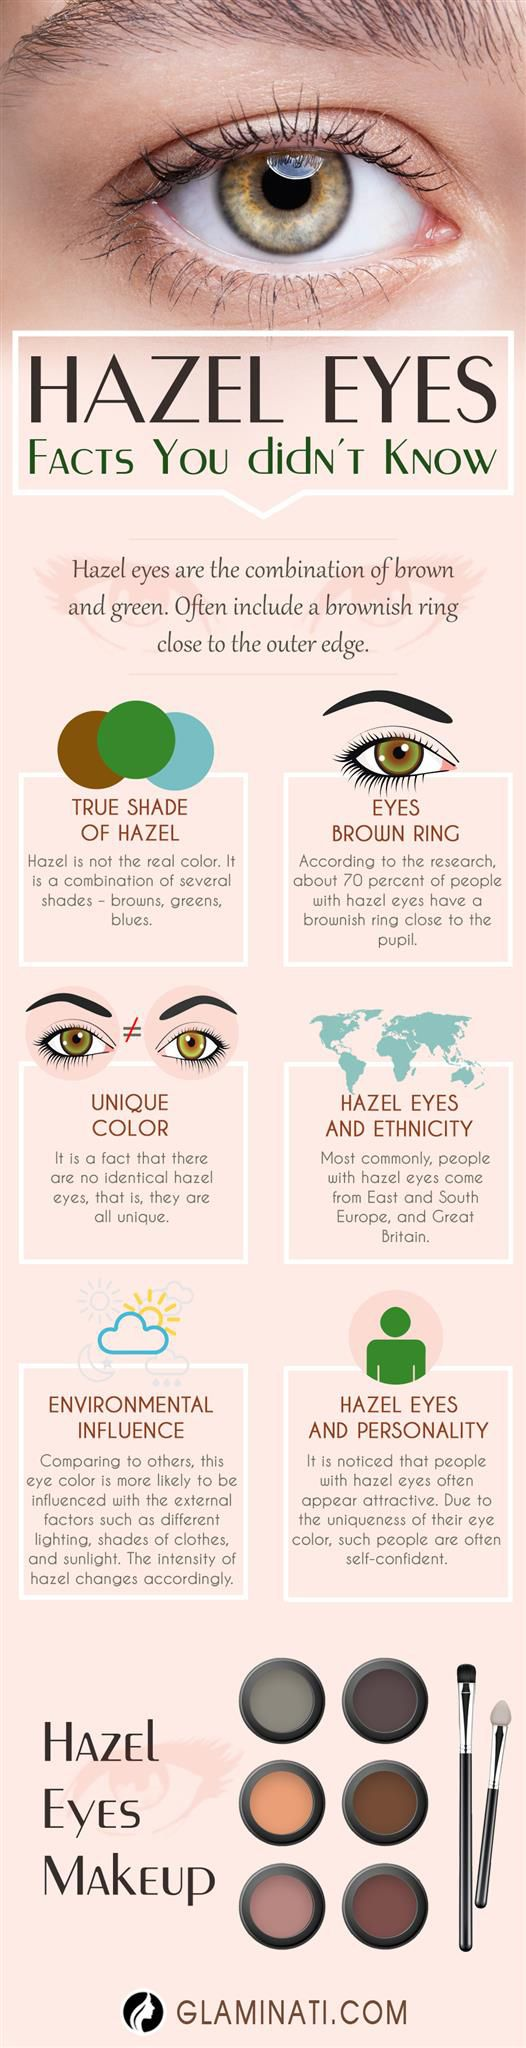 30 cool makeup looks for hazel eyes and a tutorial for